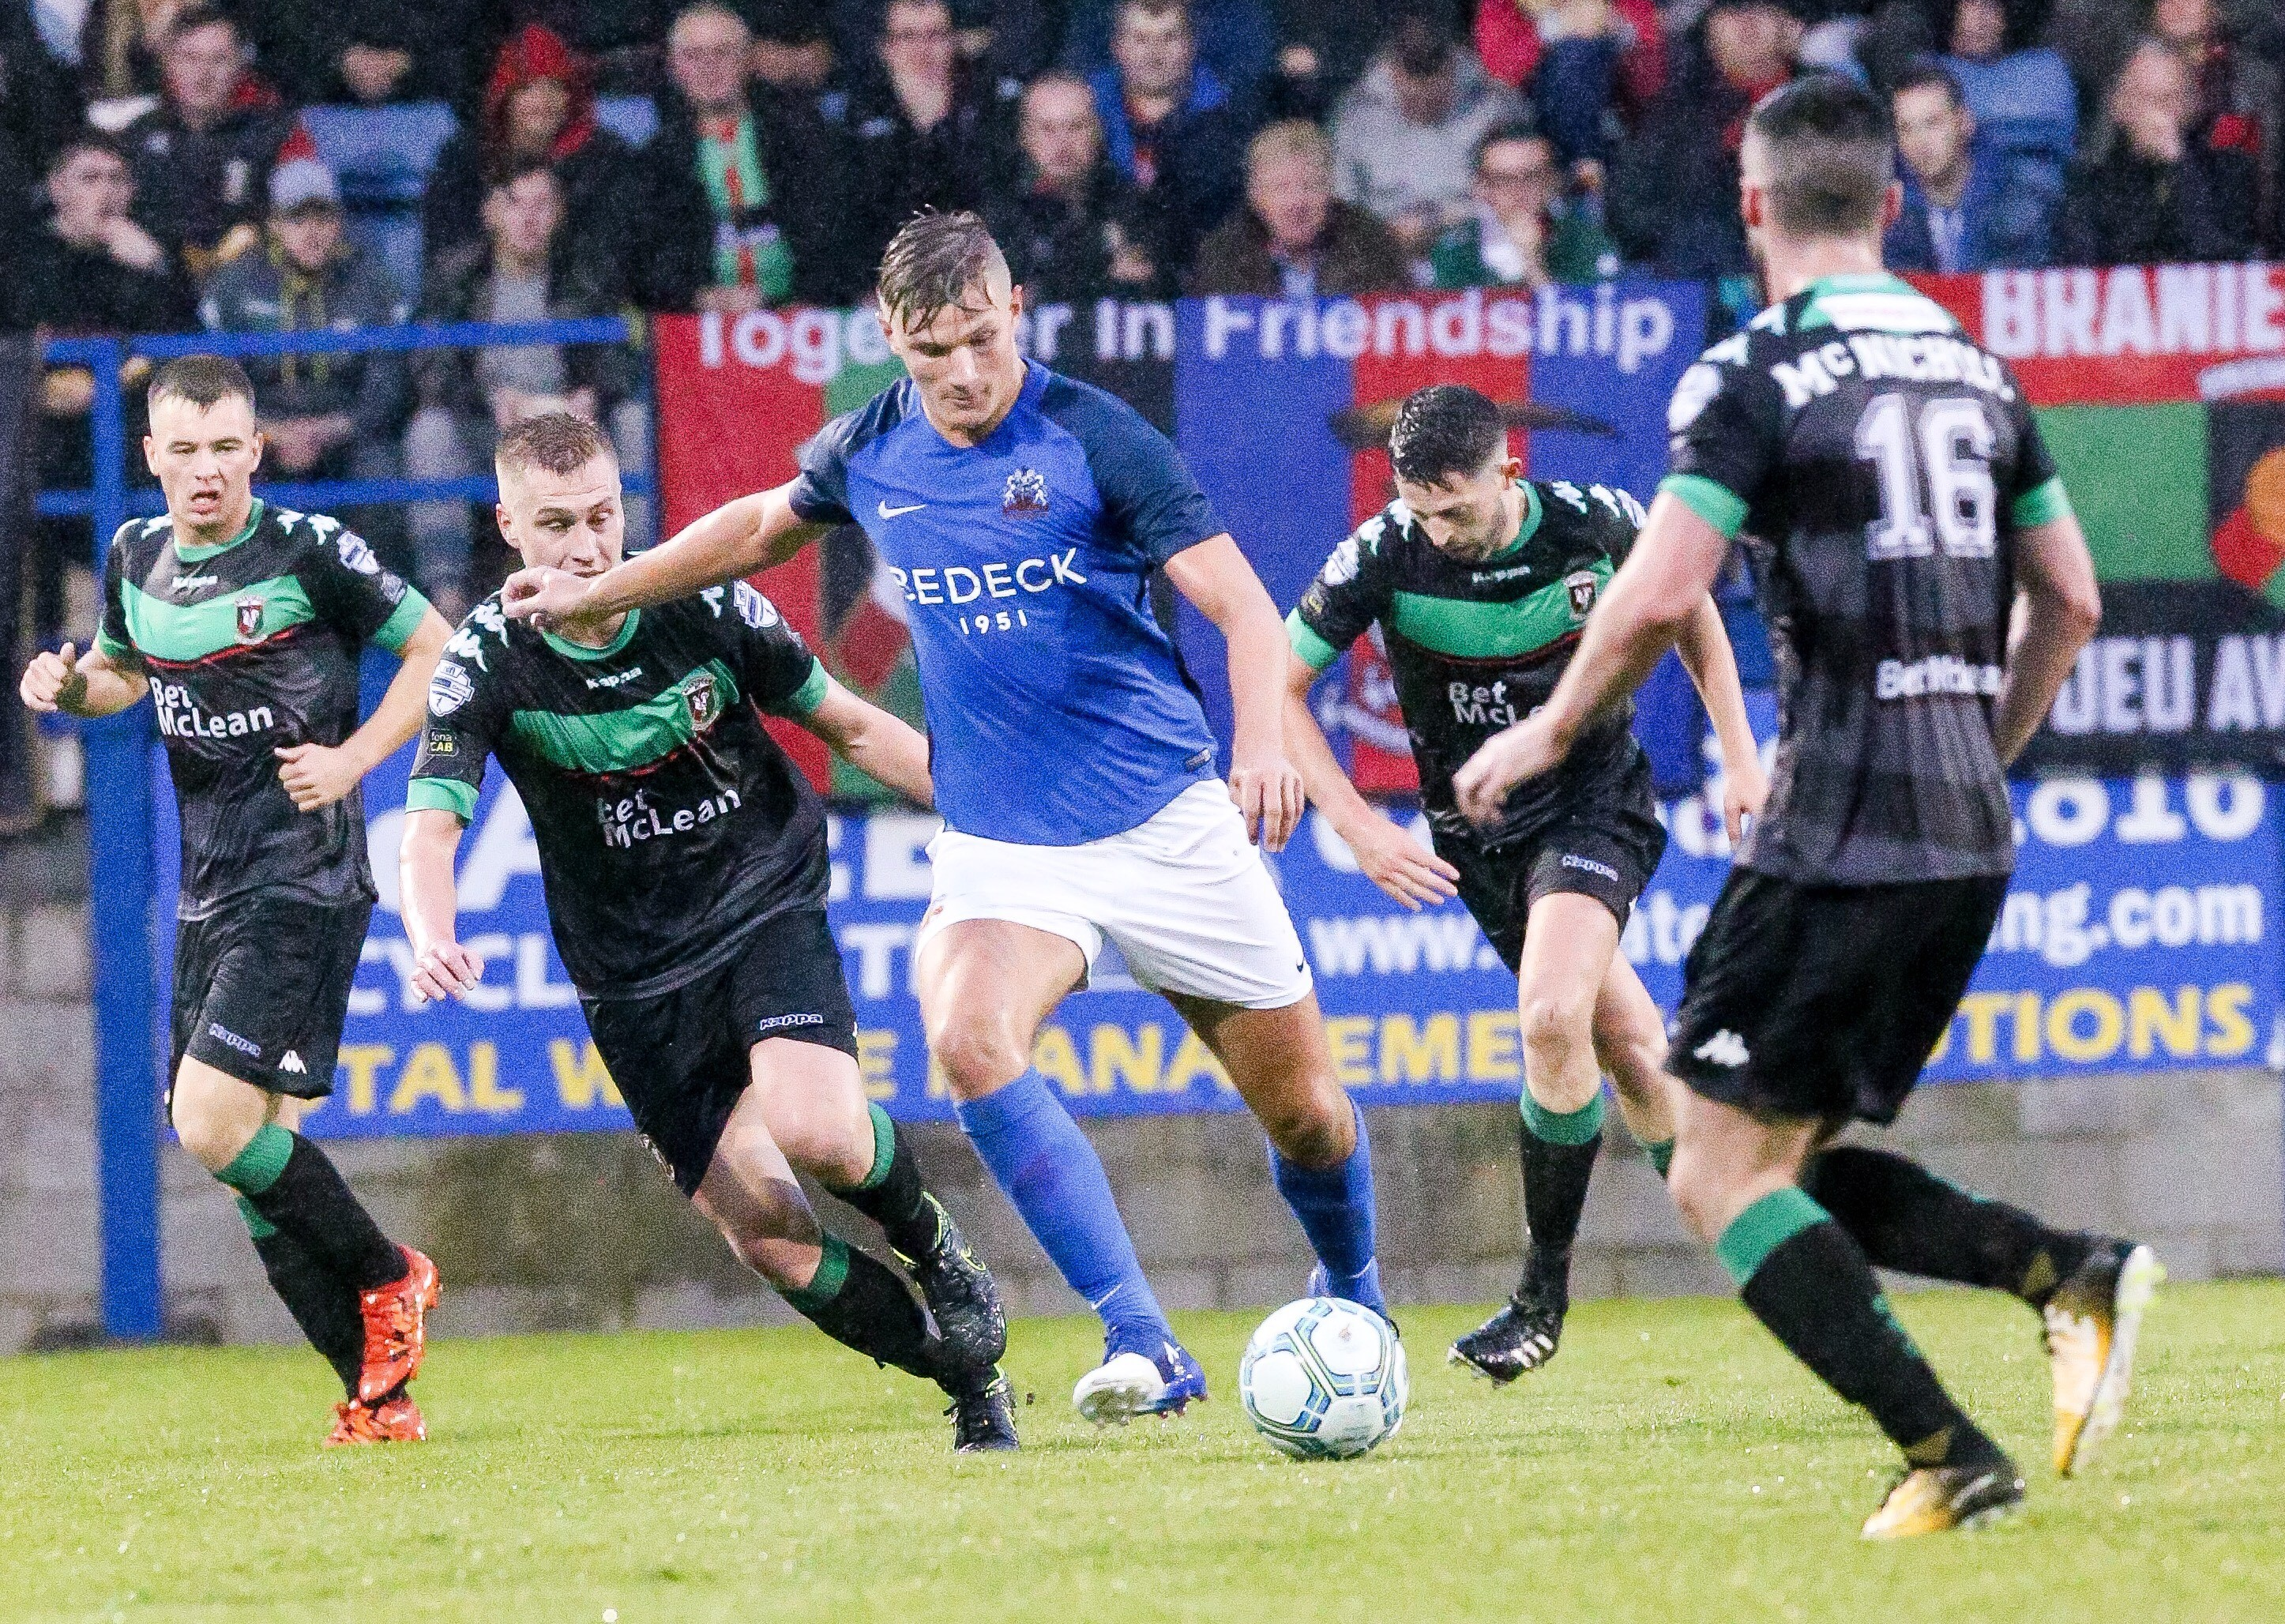 Glenavon Look to Bounce Back Against Glens